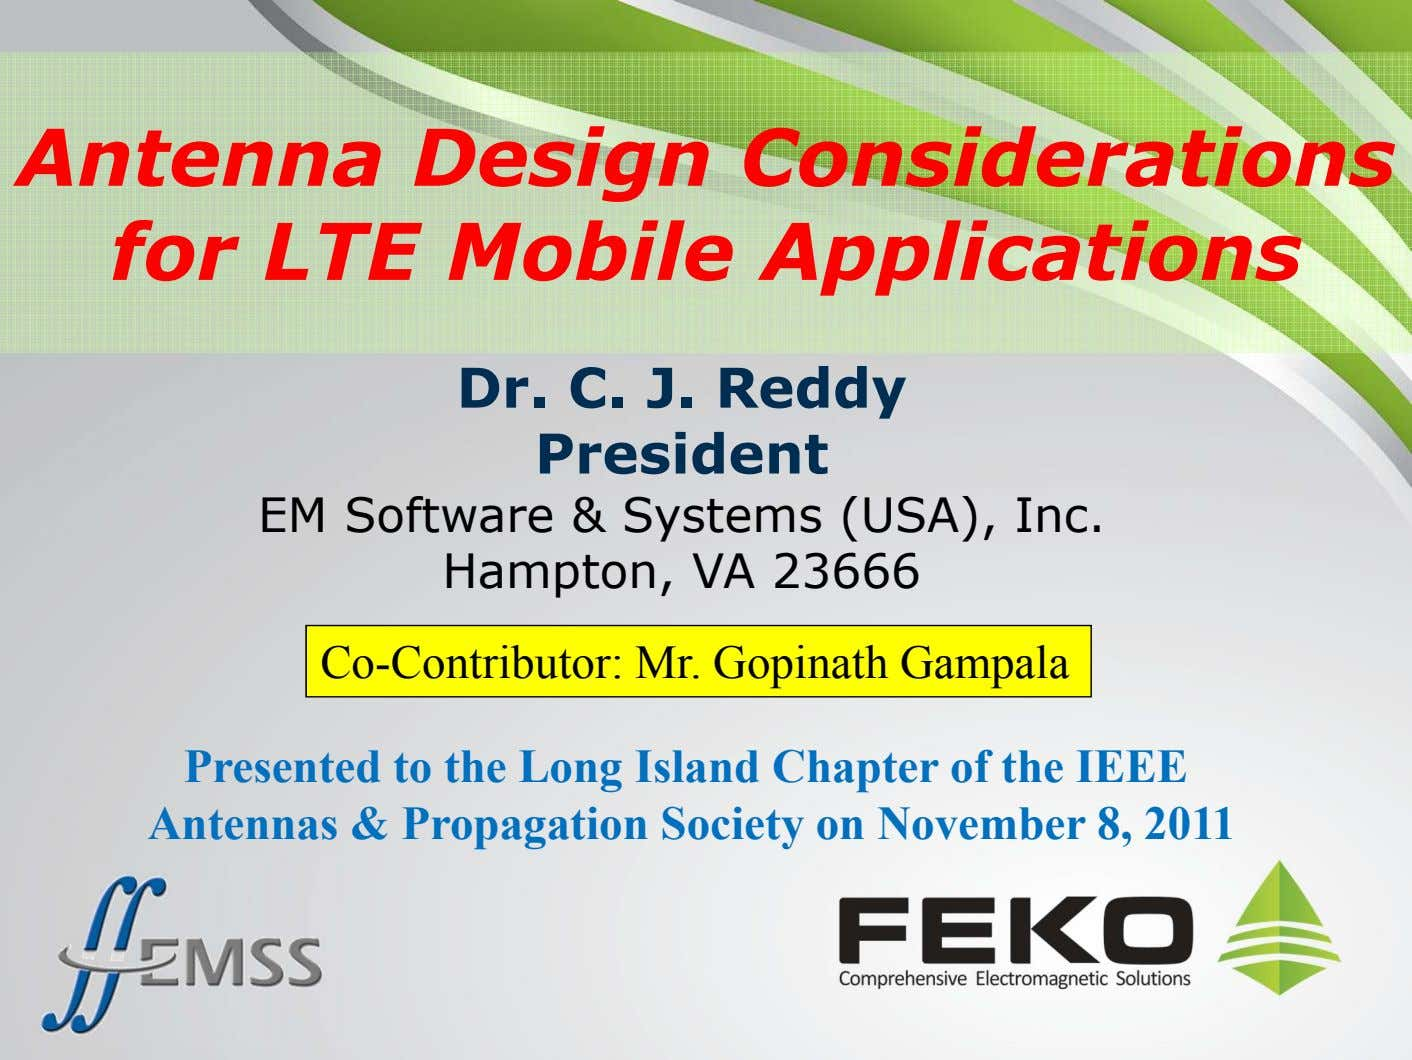 Antenna Design Considerations for LTE Mobile Applications Dr. C. J. Reddy President EM Software & Systems